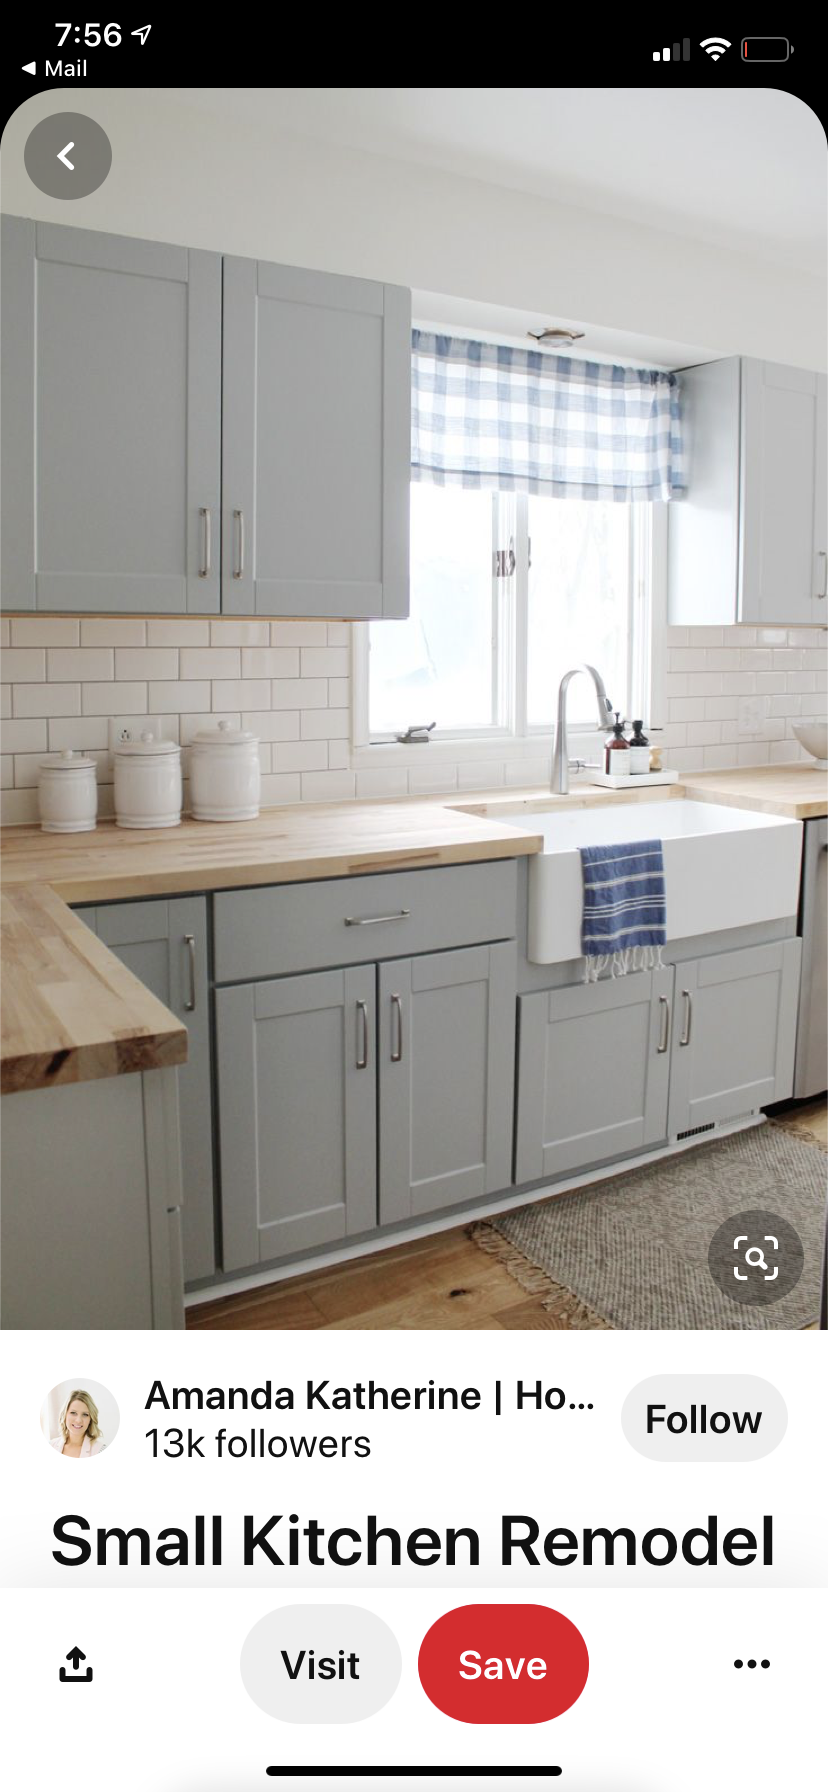 Pin By Pam Langdon On House Ideas Kitchen Remodel Small Light Grey Kitchen Cabinets Grey Kitchen Cabinets